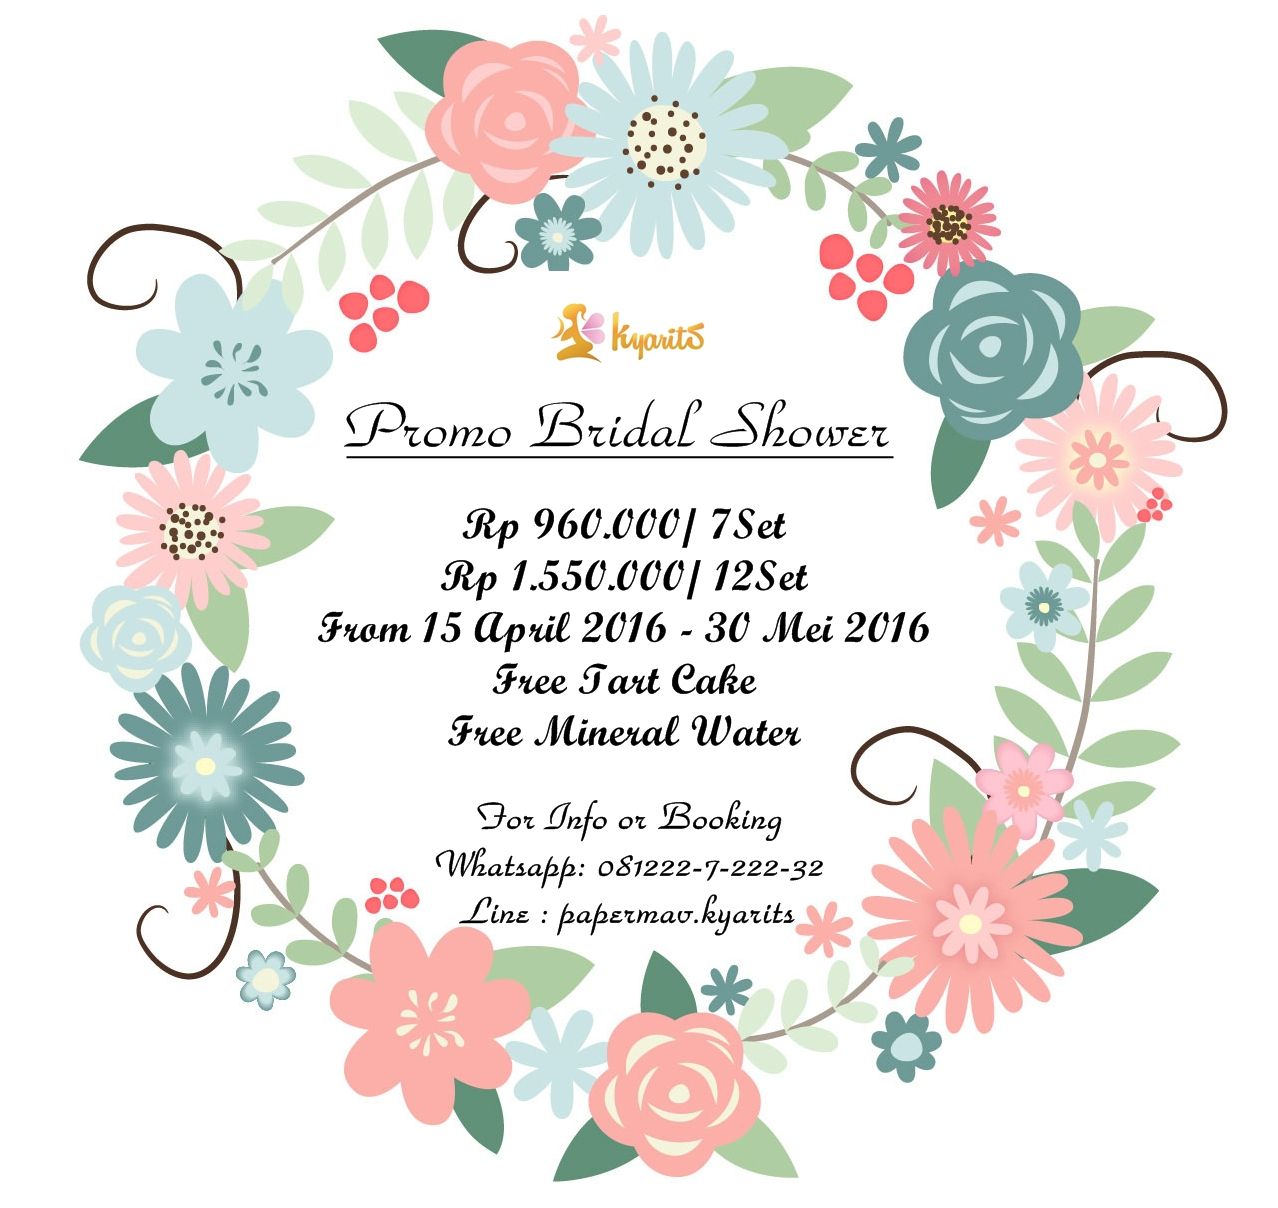 Wedding decoration price list jakarta image collections wedding other ebooks library of wedding decoration price list jakarta junglespirit Choice Image